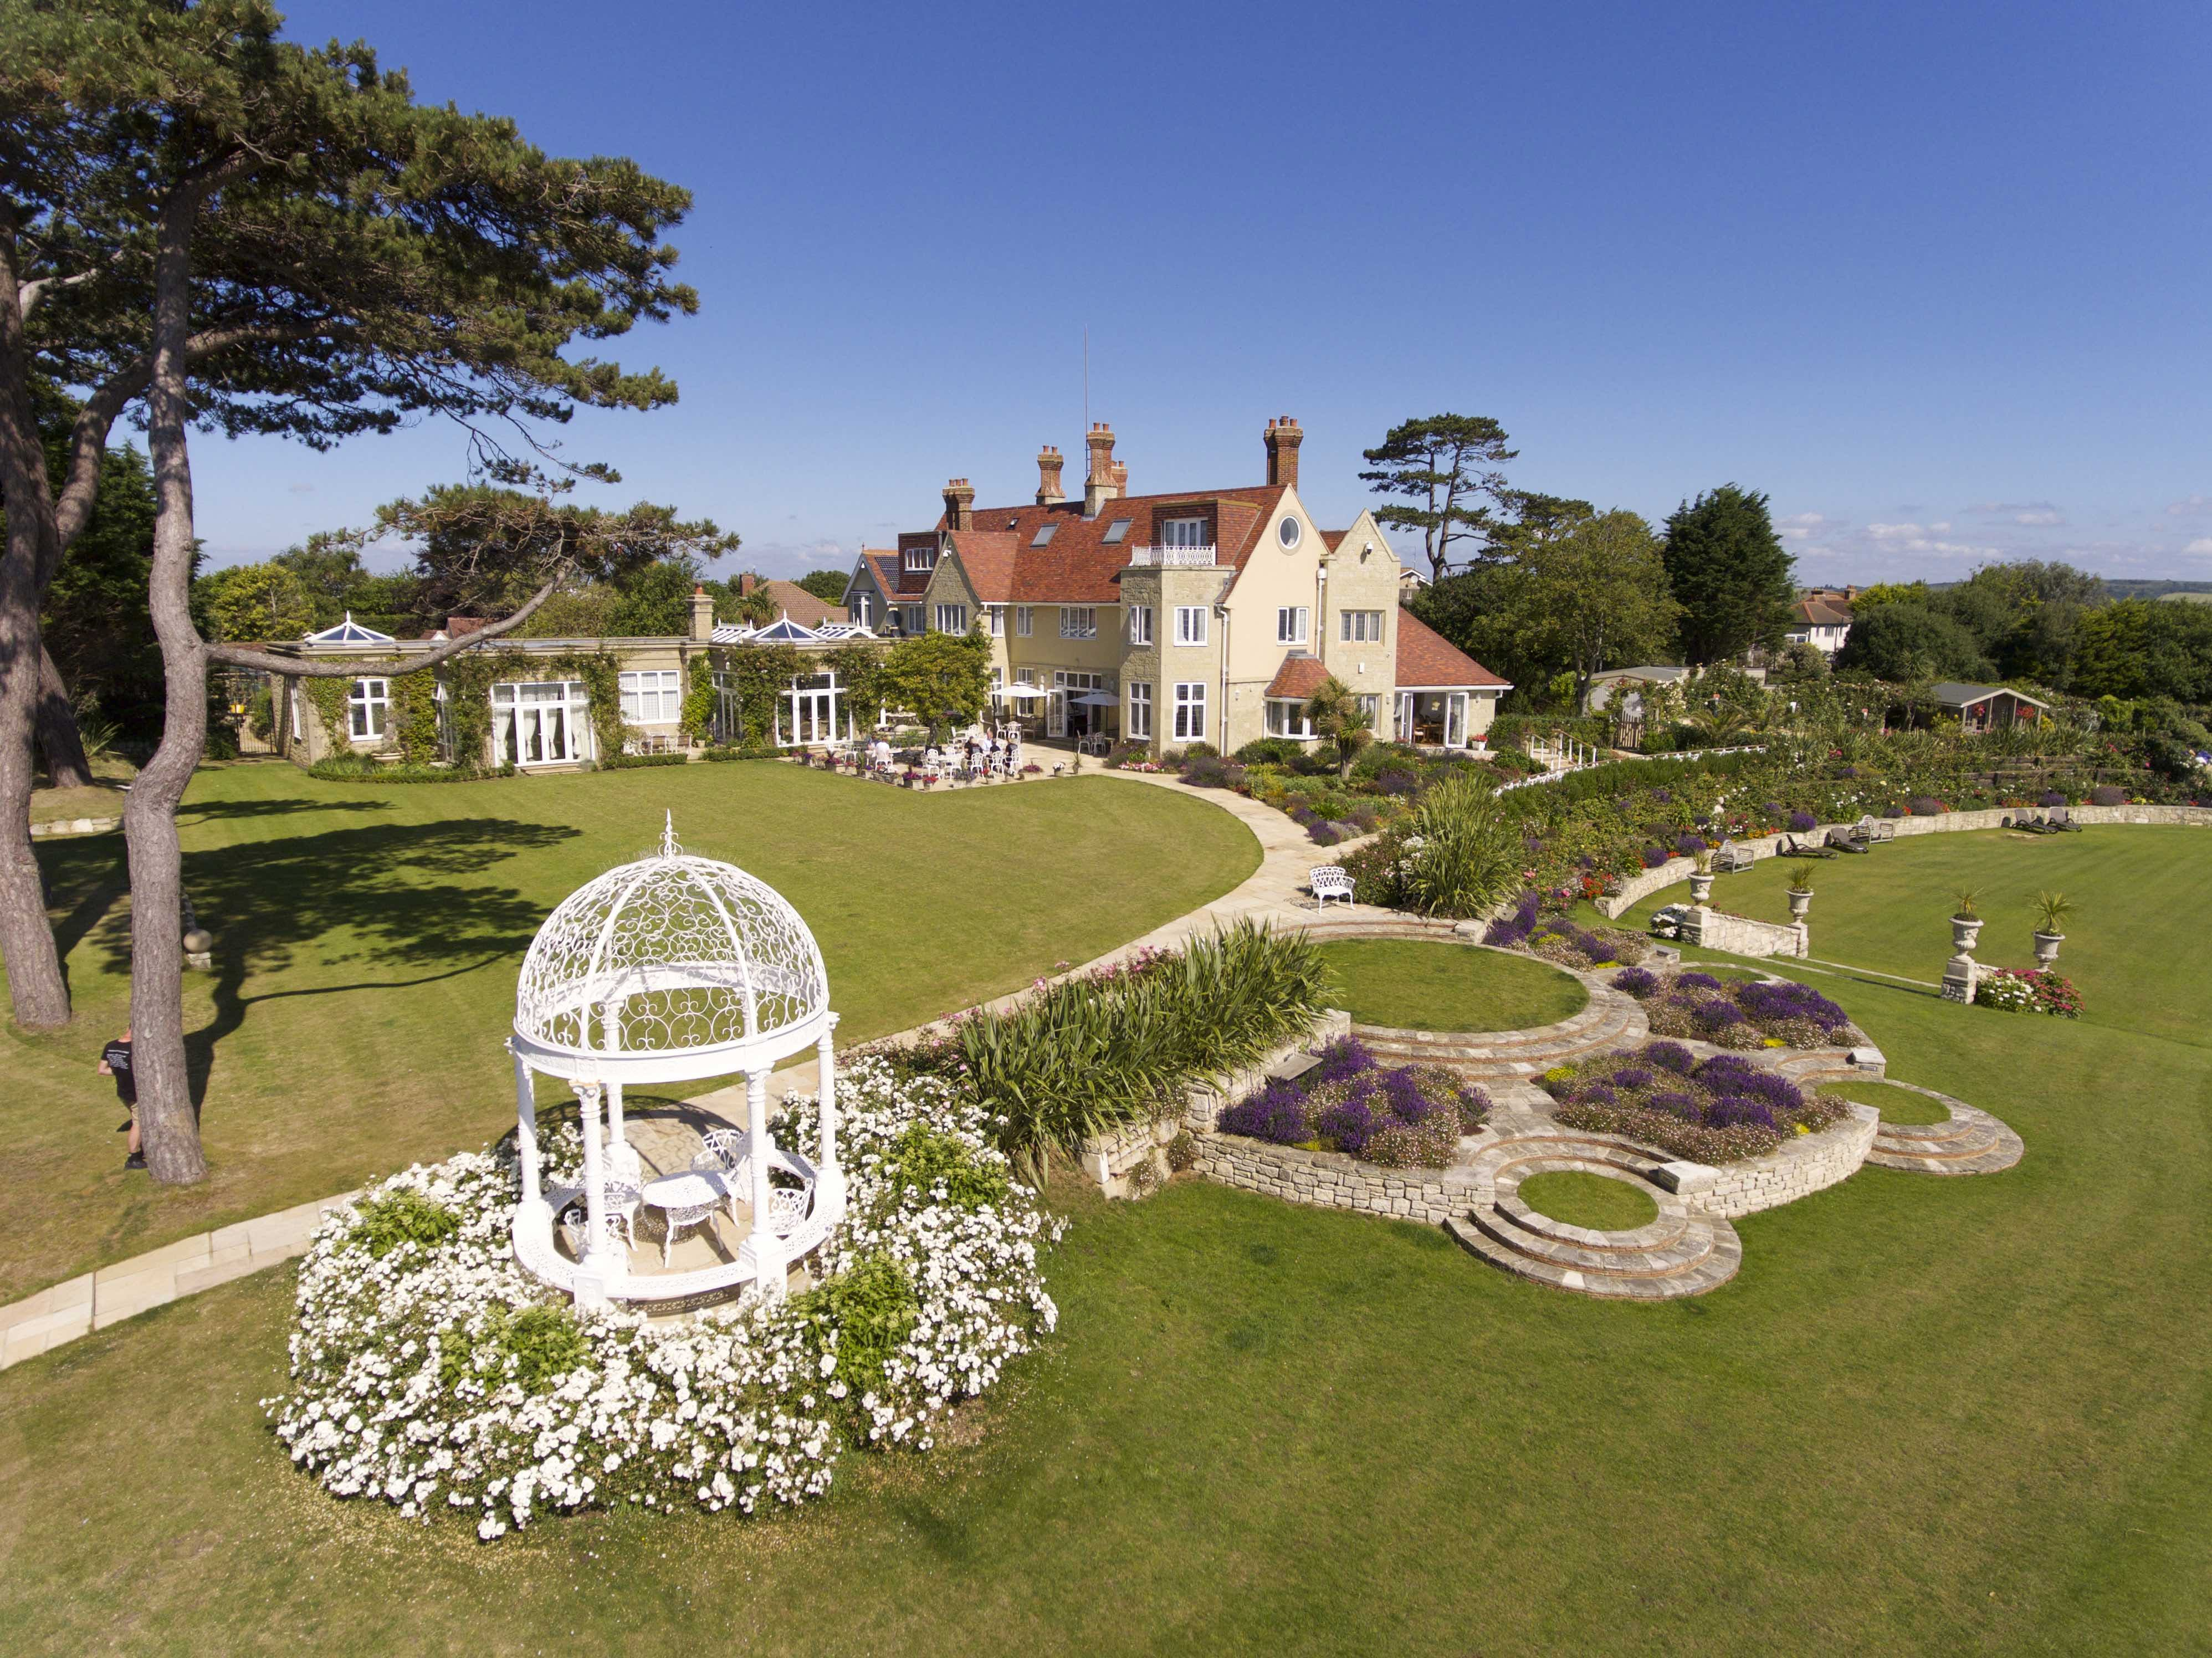 Haven Hall Hotel. Aerial photo of Gazebo and Hotel